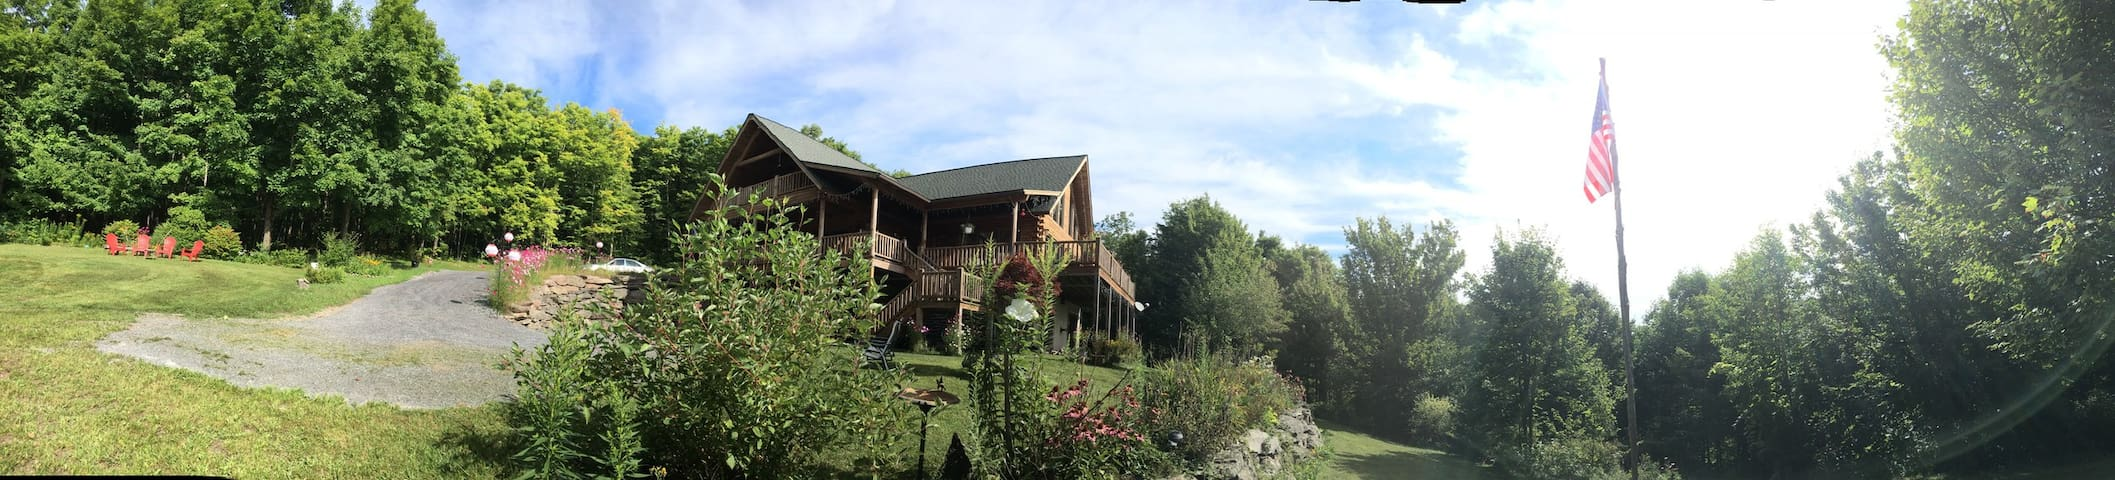 Catskill Contemporary Log Home! - Ski or Hike